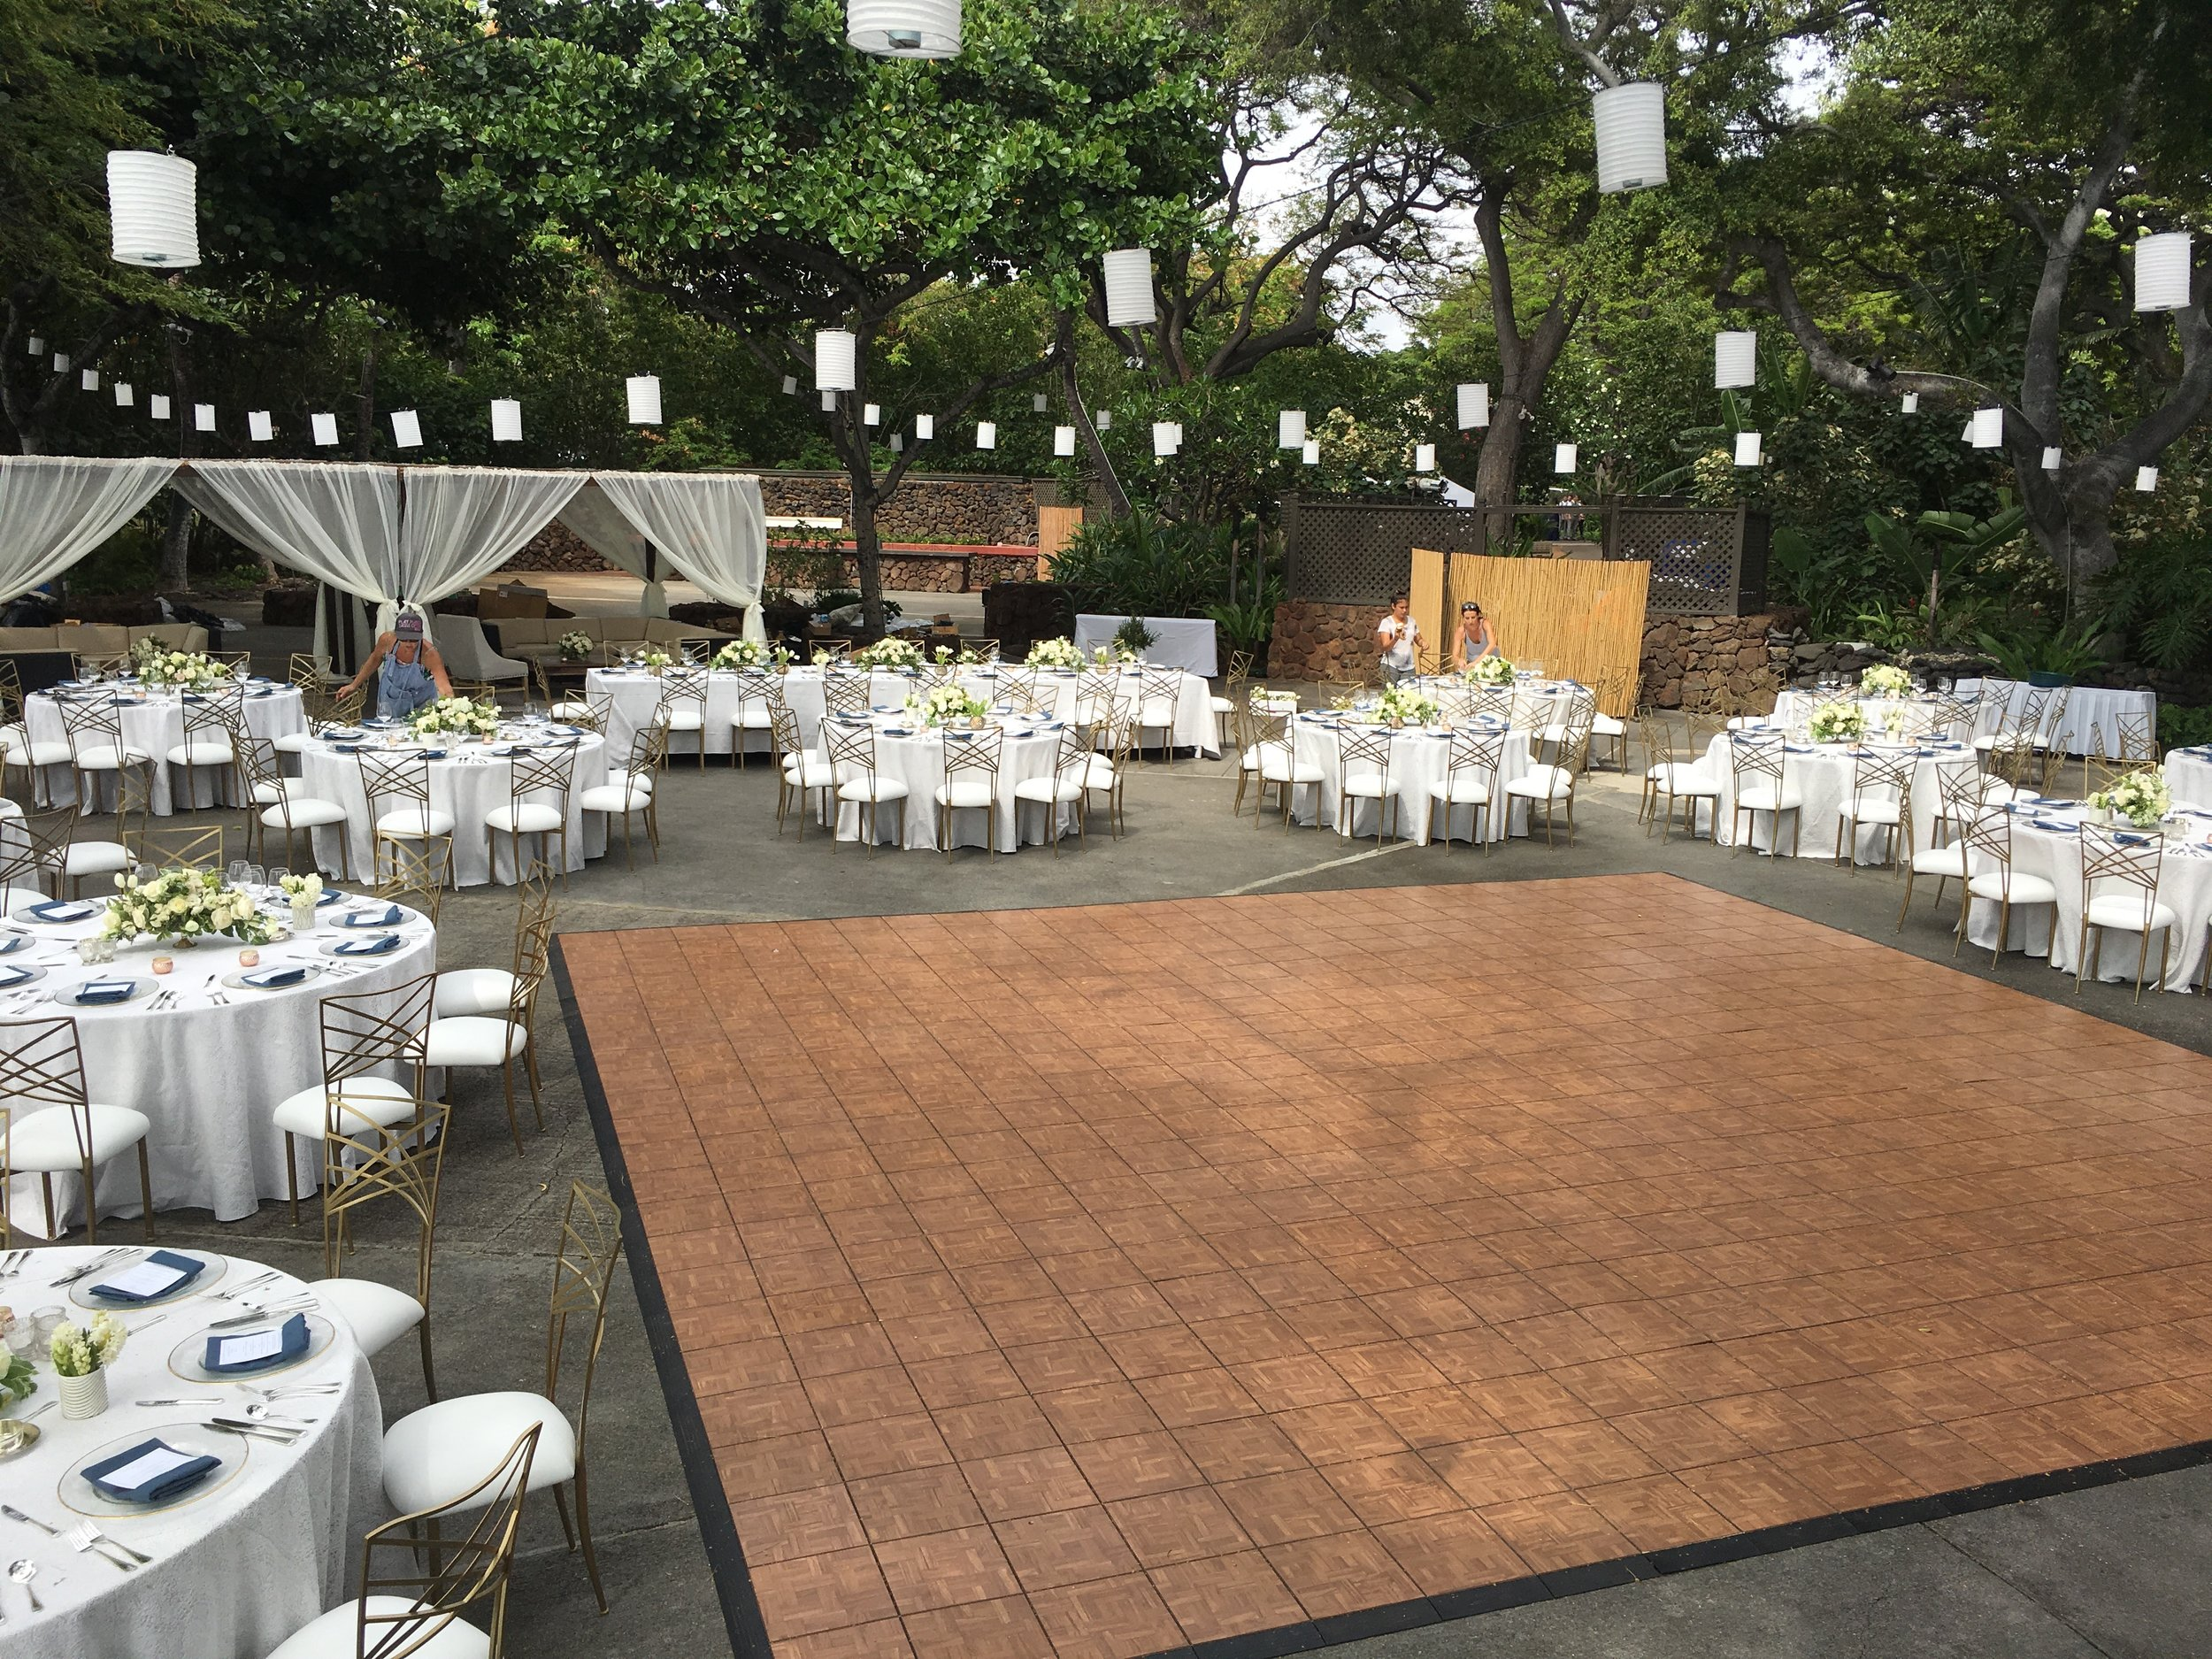 Our Teak Dance Floor set for a wedding at the  Mauna Kea Beach Hotel  North Point Luau grounds, along with our Gold Fan Fair Chameleon Chairs with White Cushions, Dark Wood Structure, White Lanterns and Market Lighting. Coordination  Bliss In Bloom .